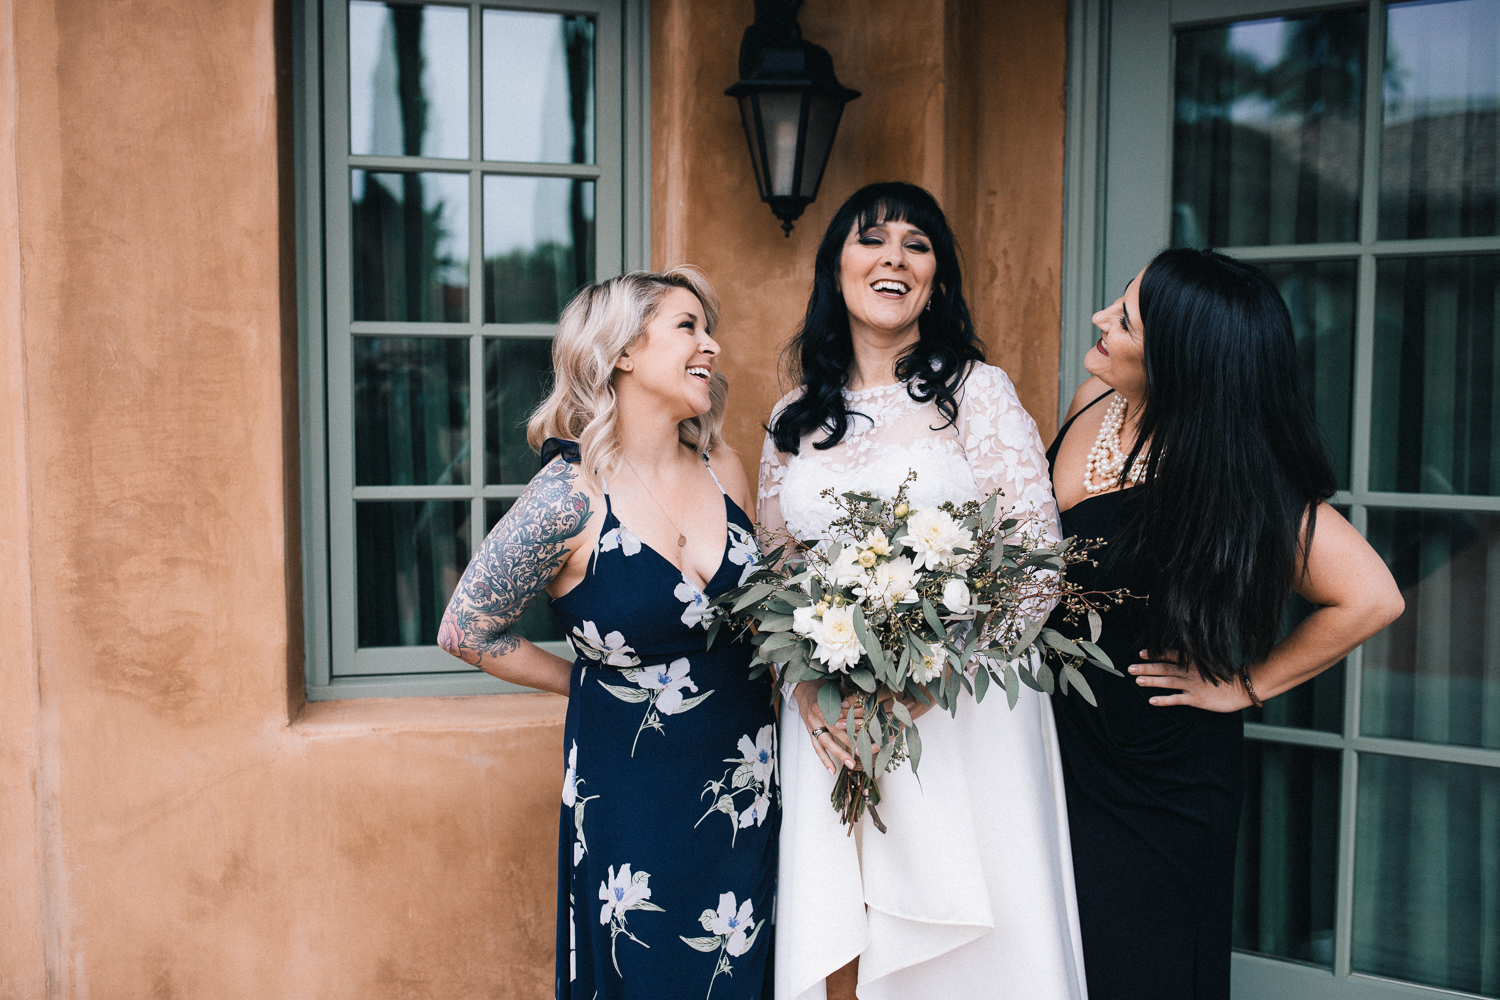 2019_05_ 182019.05.19 Lisa + Eddie South Bay Wedding Blog Photos Edited For Web 0054.jpg